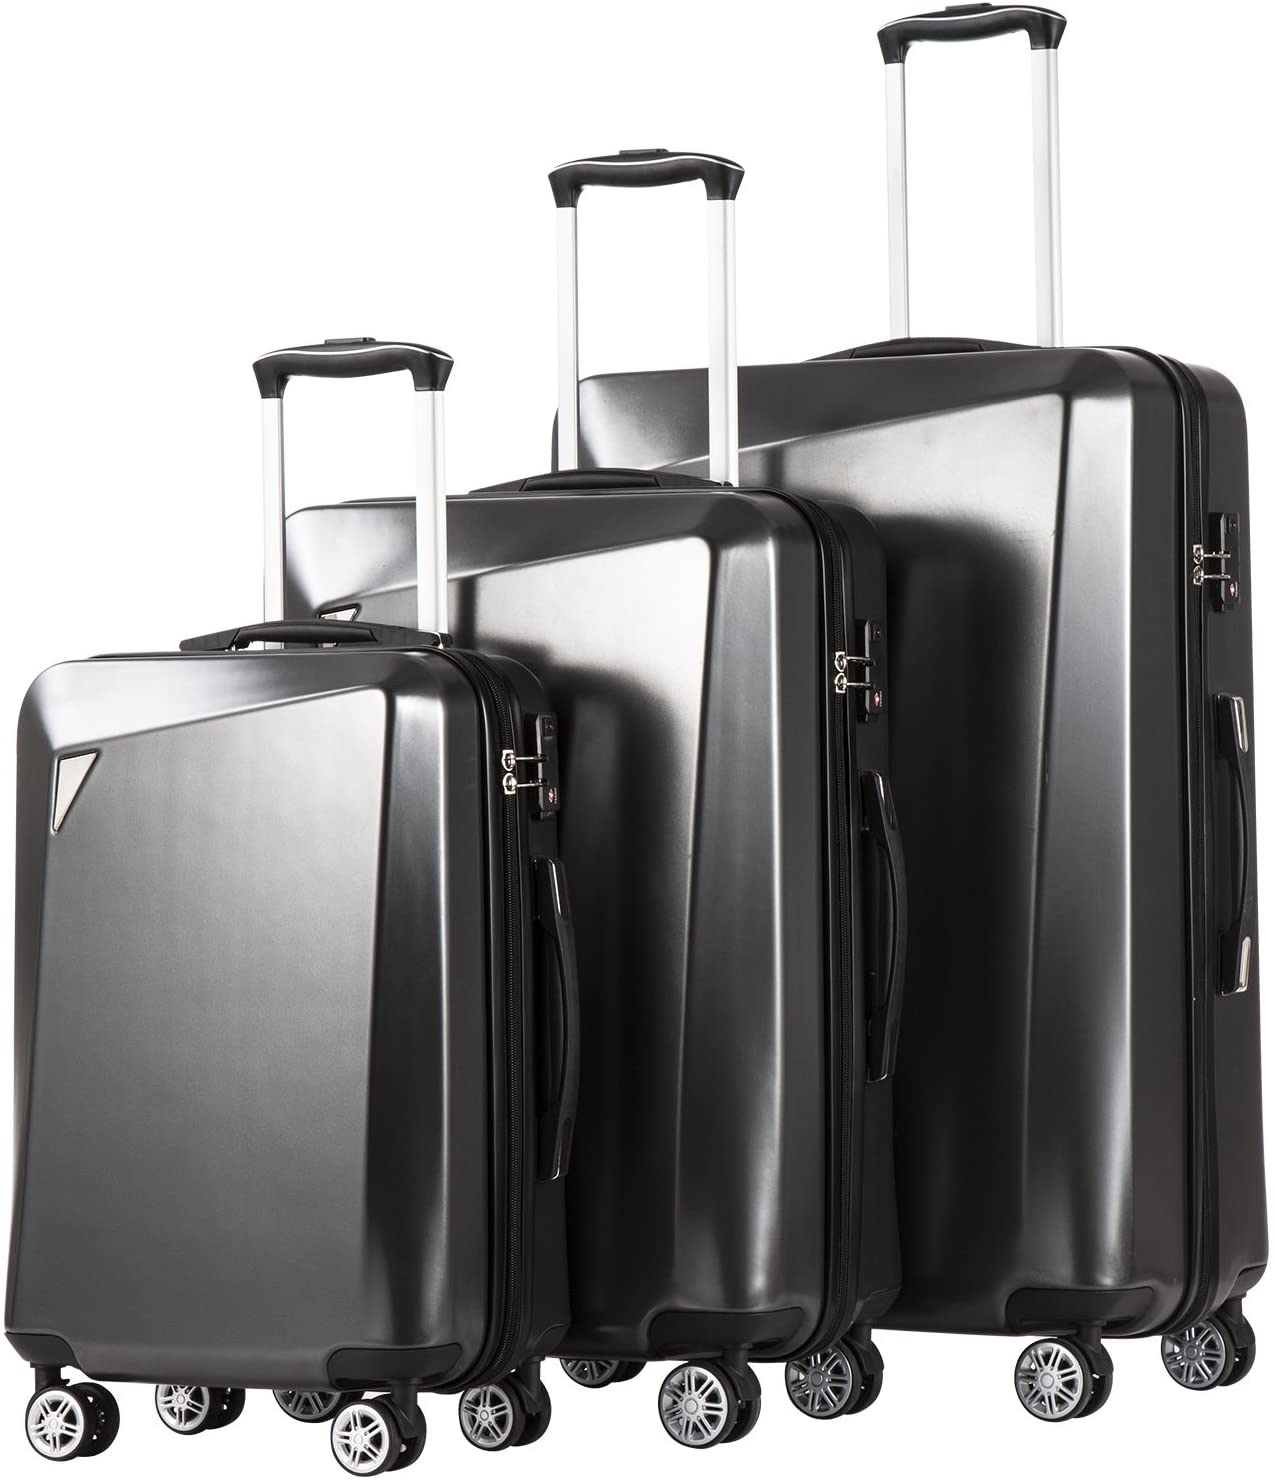 Coolife Luggage 3 Piece Sets PC+ABS Suitcase inch Ranking TOP3 Spinner Max 51% OFF 20 24